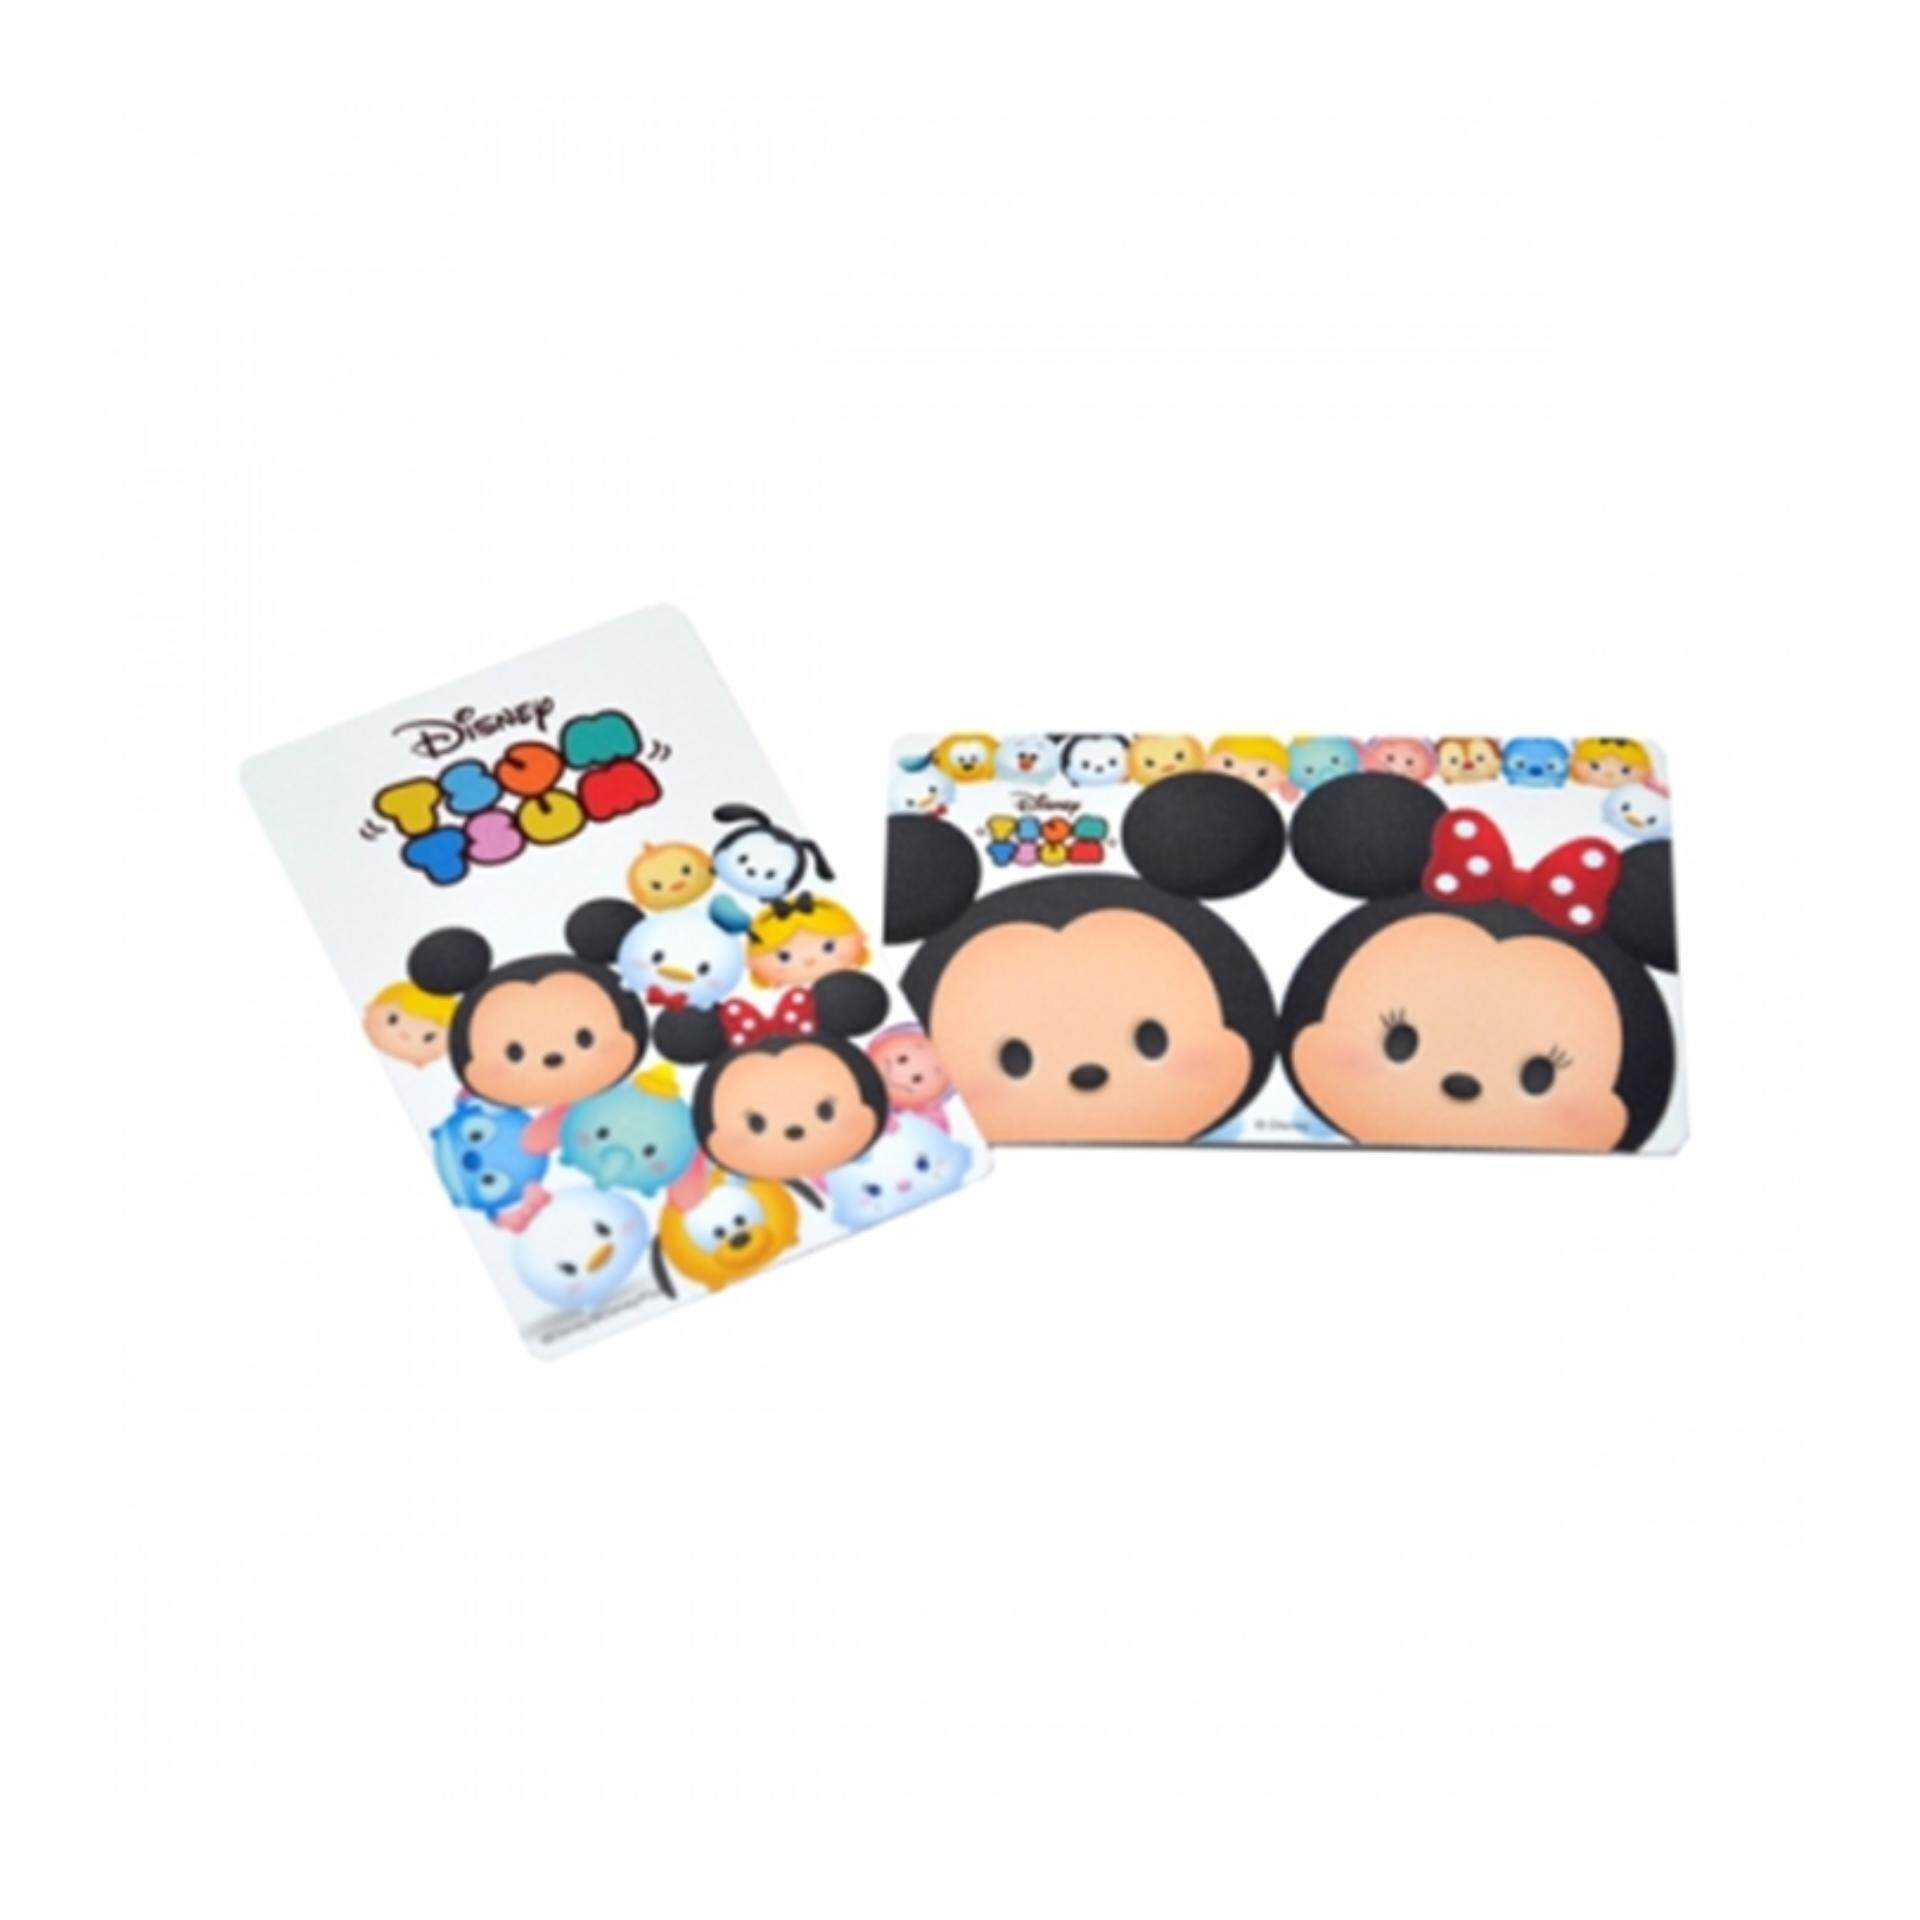 Disney Tsum Tsum 2's Card Sticker - Mickey